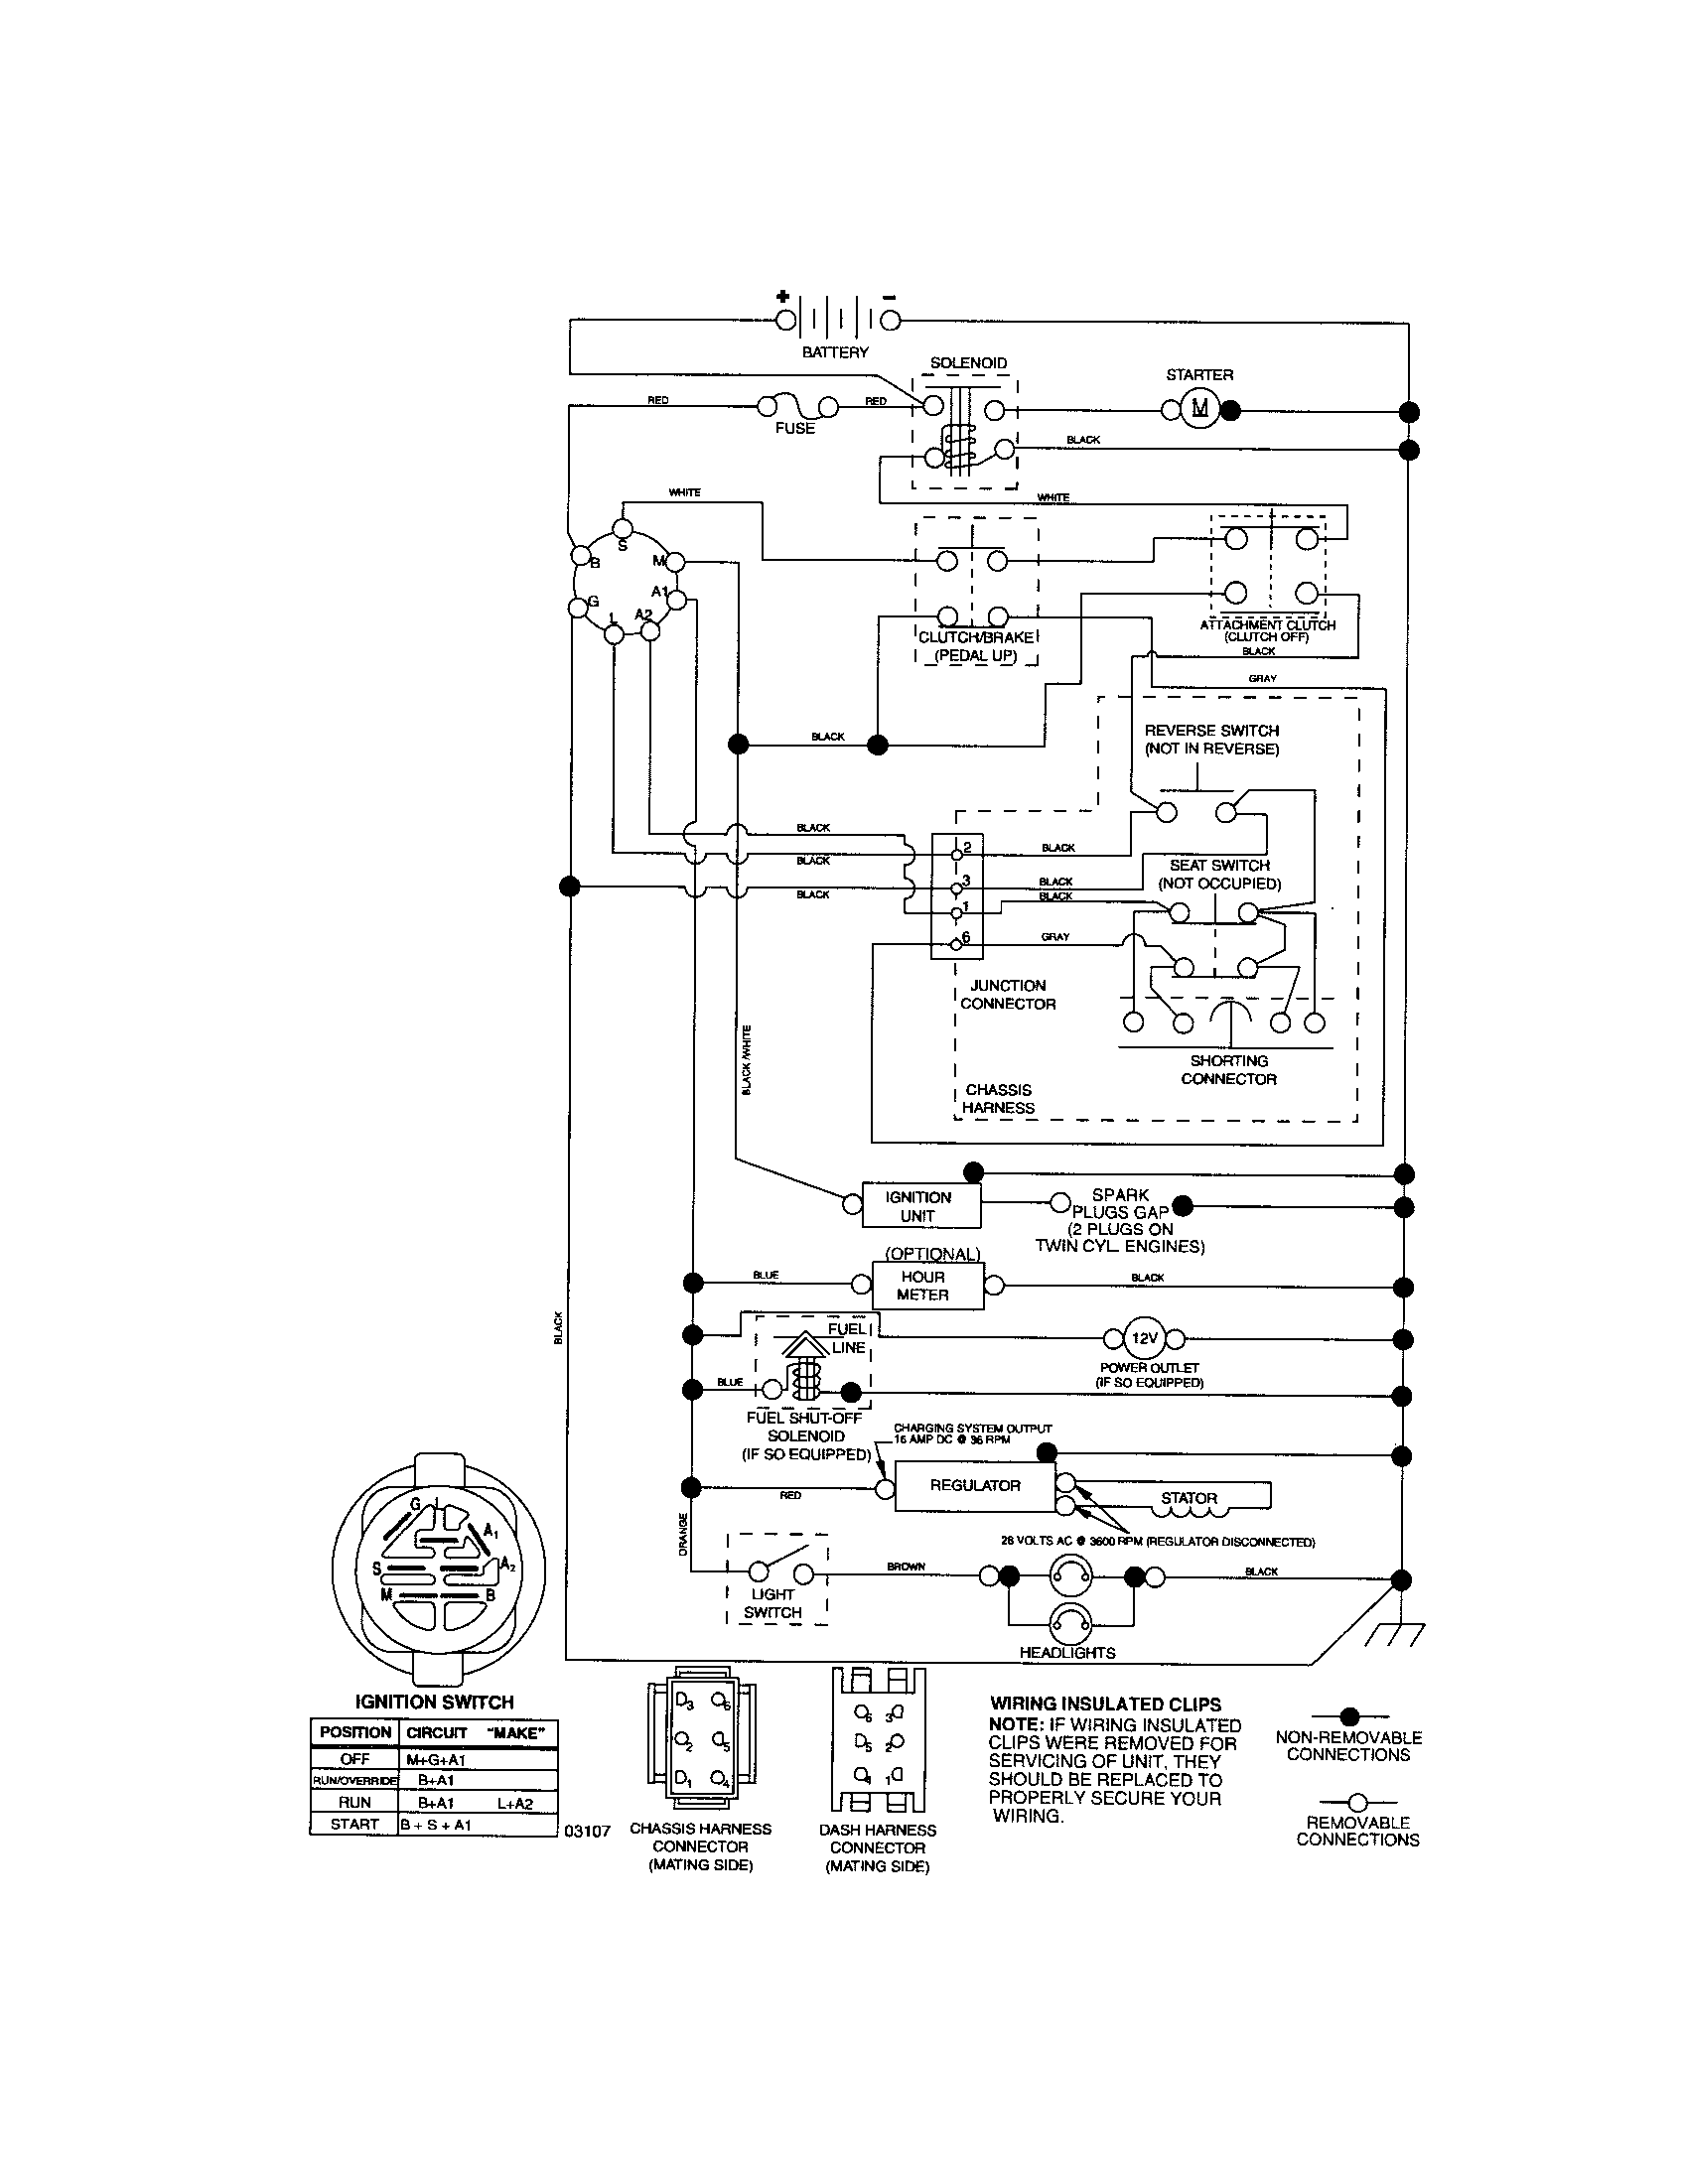 craftsman riding mower electrical diagram | wiring diagram,Wiring diagram,Wiring Diagram For Craftsman Zero Turn